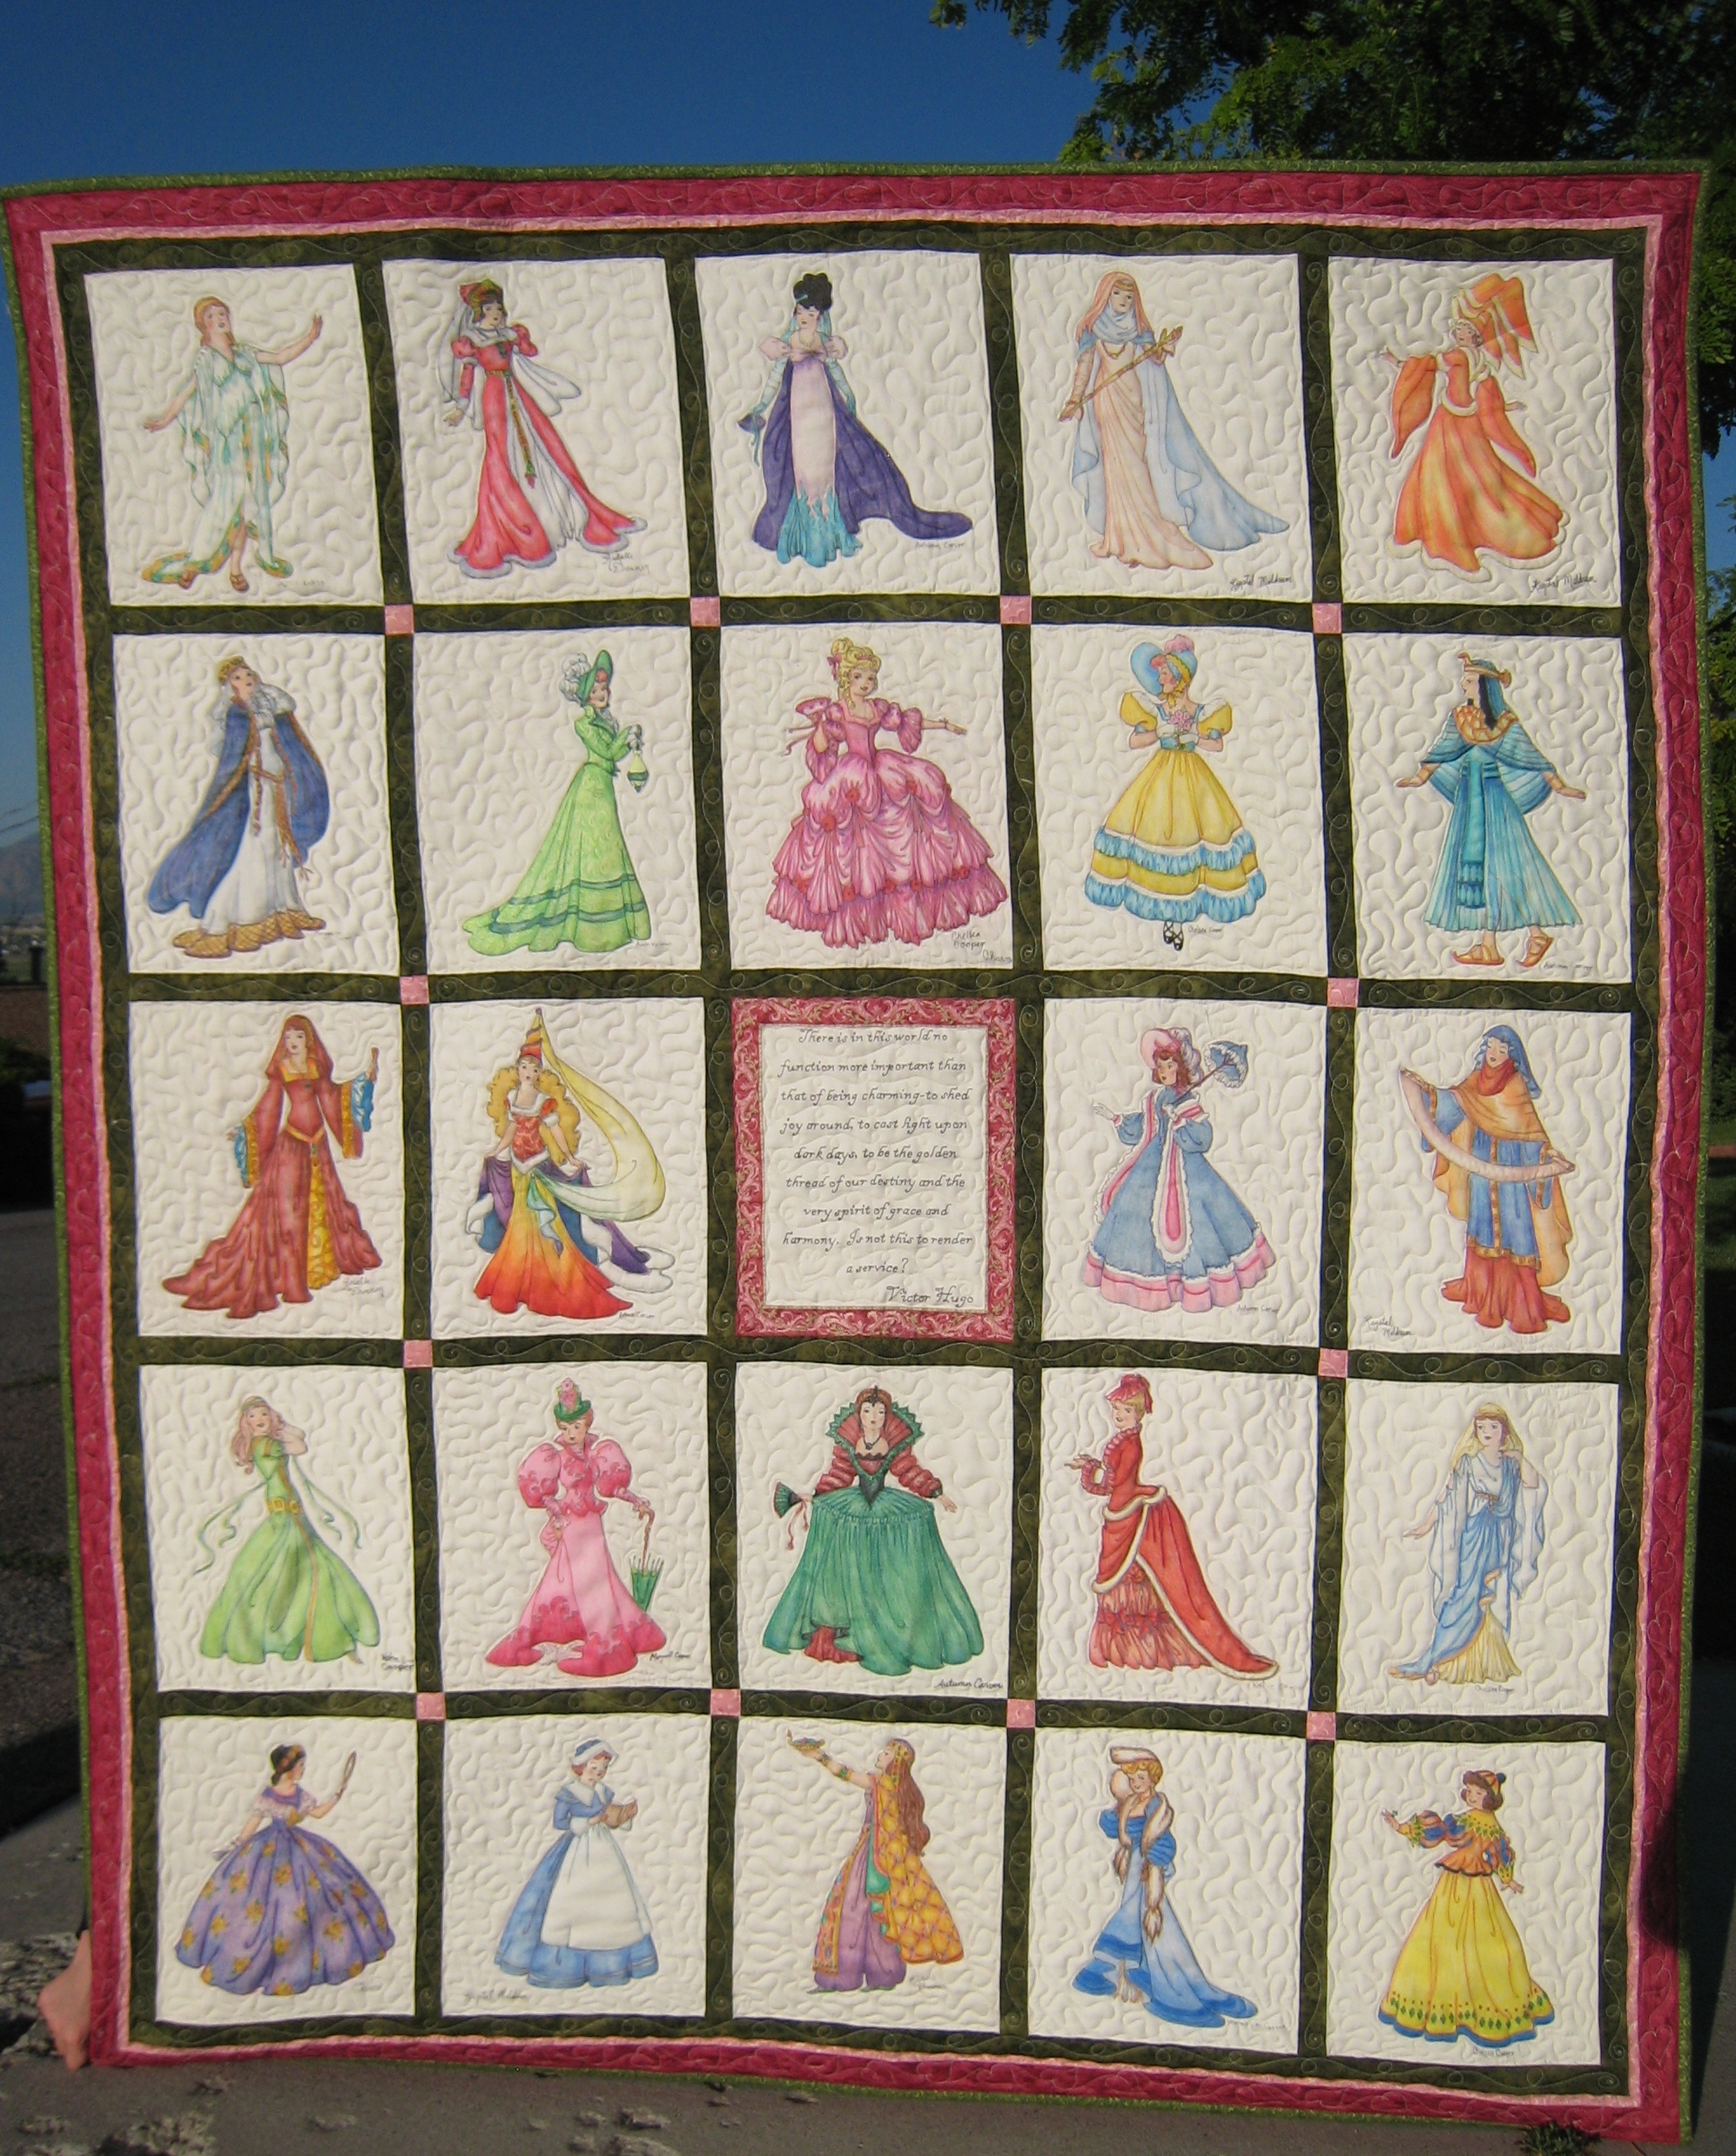 My mom loves to quilt but her 7 daughters only like to color - so we made a crayon quilt! I drew these ladies on fabric with a fabric pen and then we colored this quilt wall hanging with Crayola crayons and ironed it which makes the color permanent. (Use a paper towel for the wax to melt onto the paper towel and leave the color behind.)